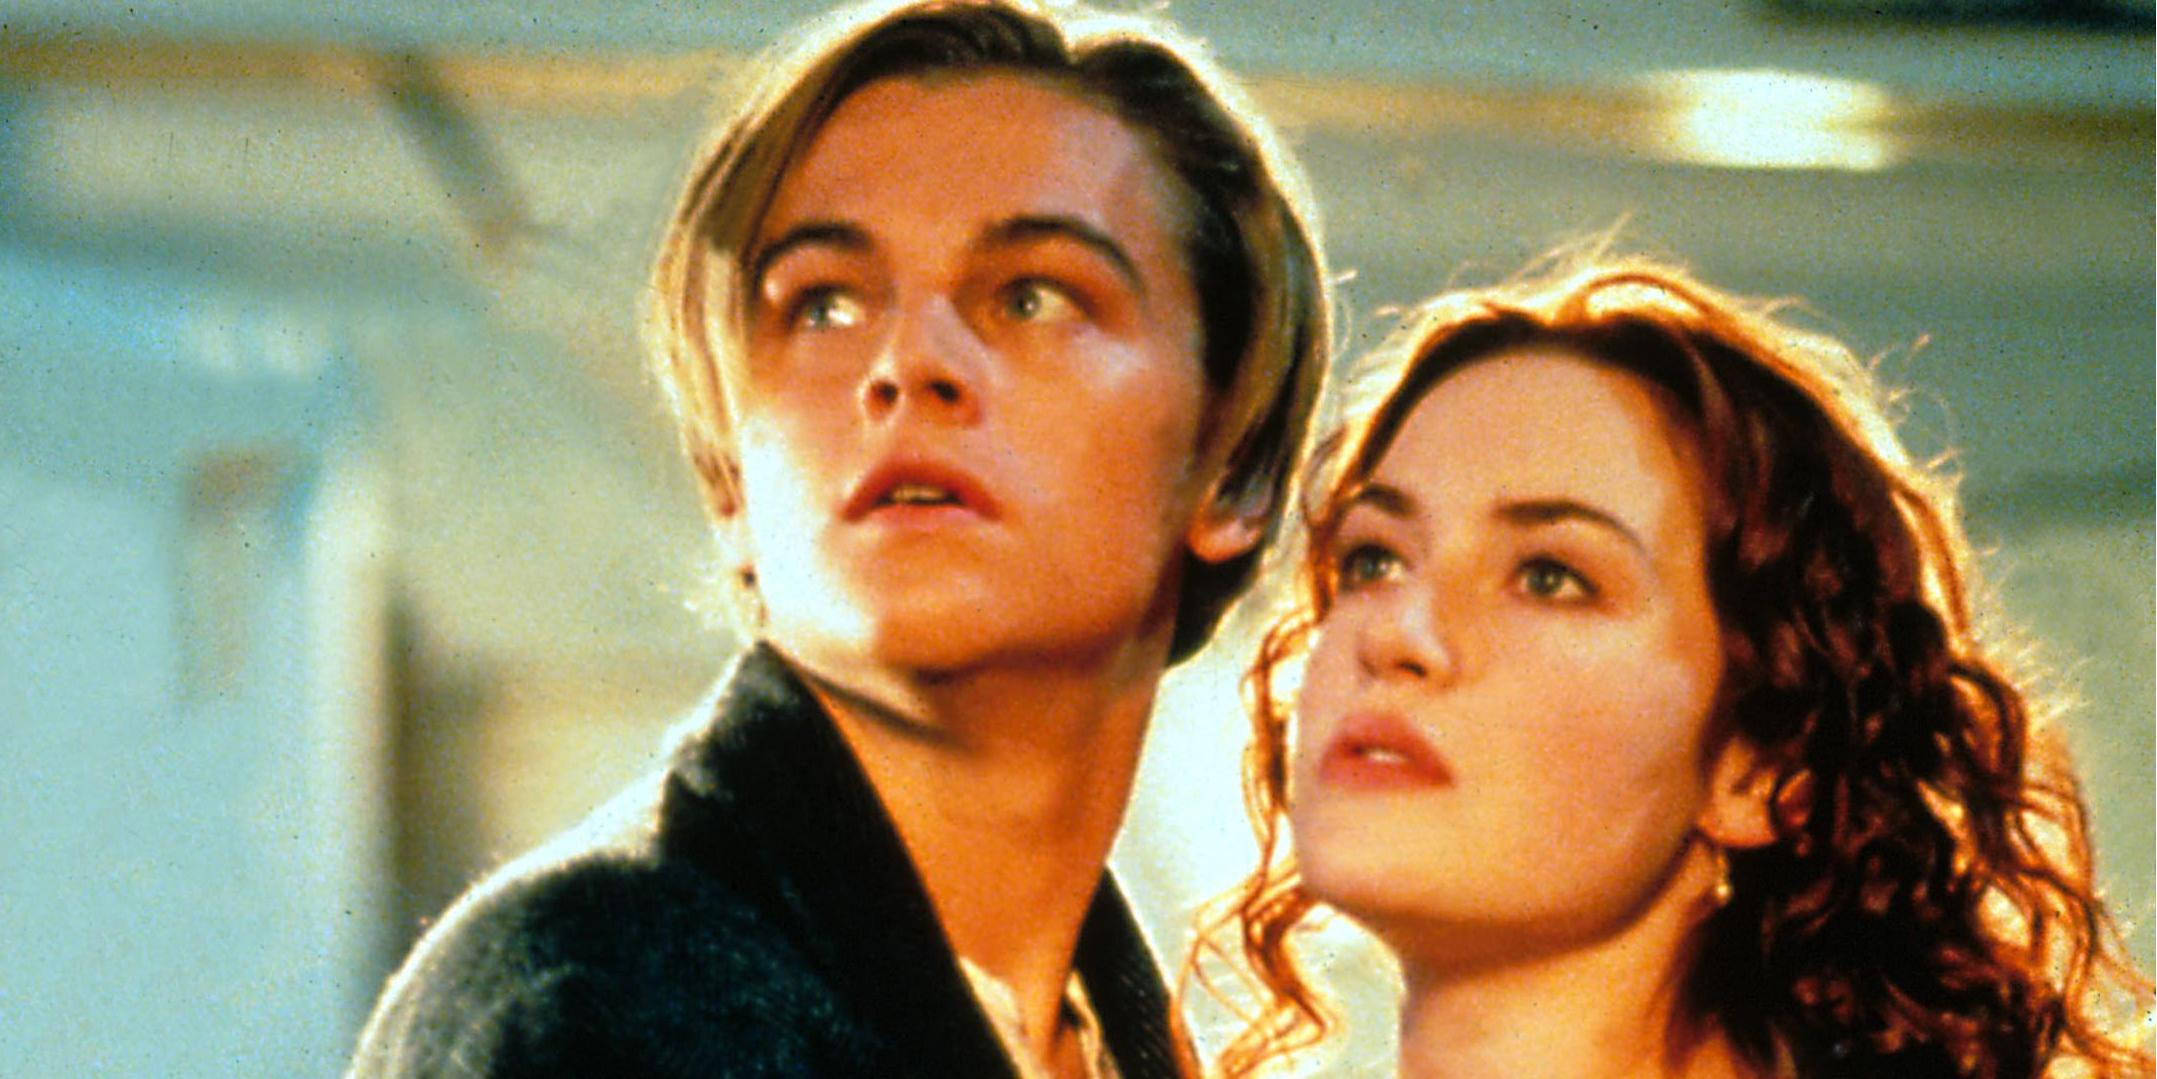 Deleted Scene From Titanic Reveals Even More Heartbreak For Jack And